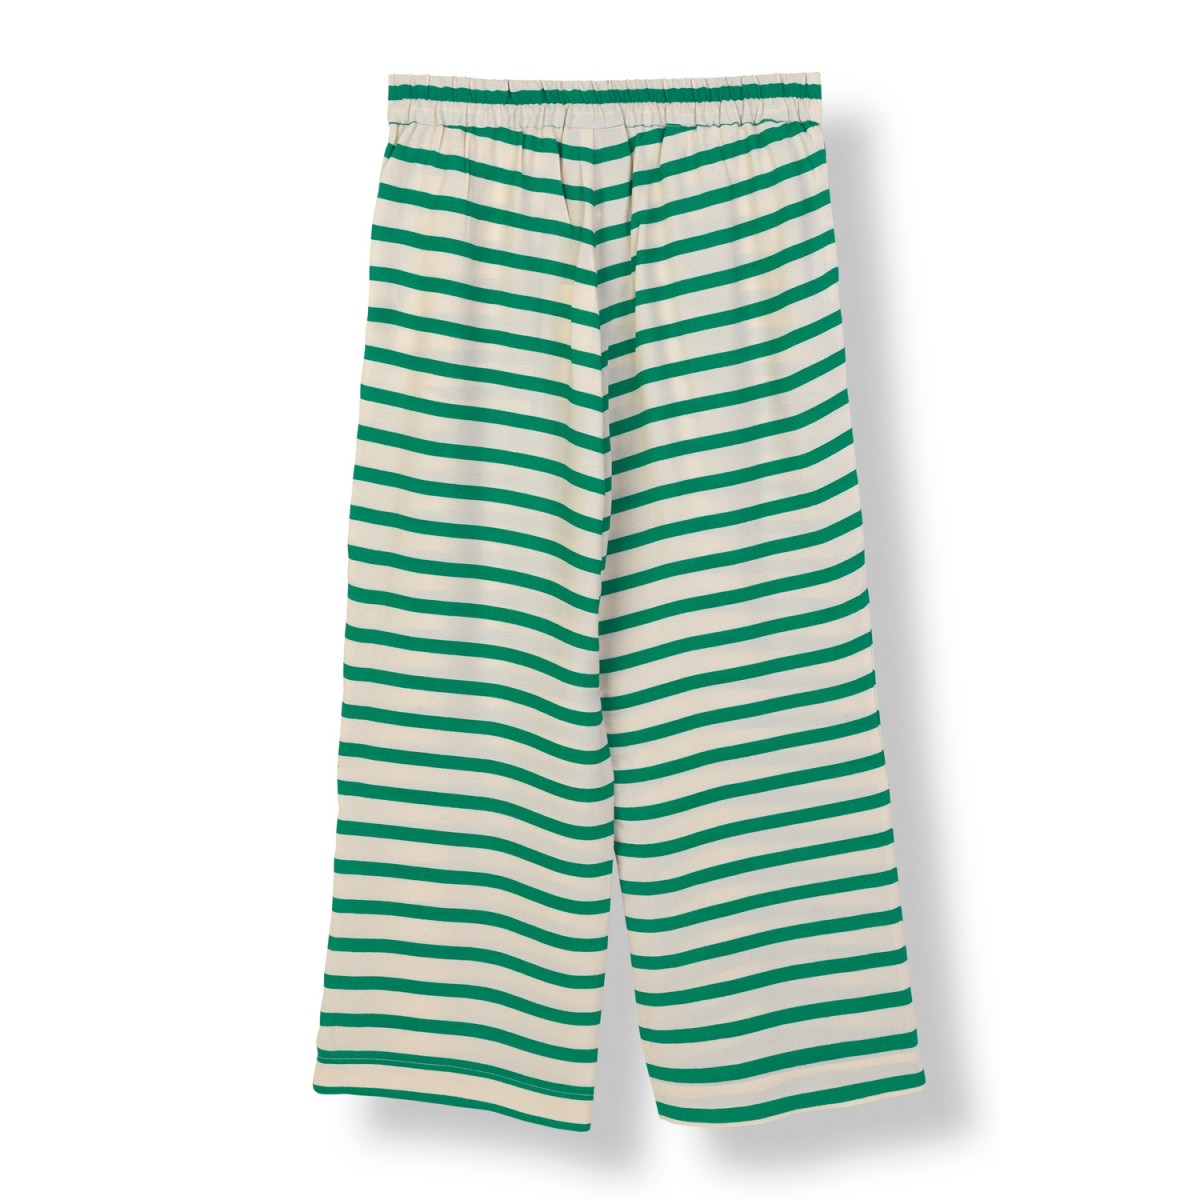 Stella Nova SR-4392 Stripes 231 Emerald-37